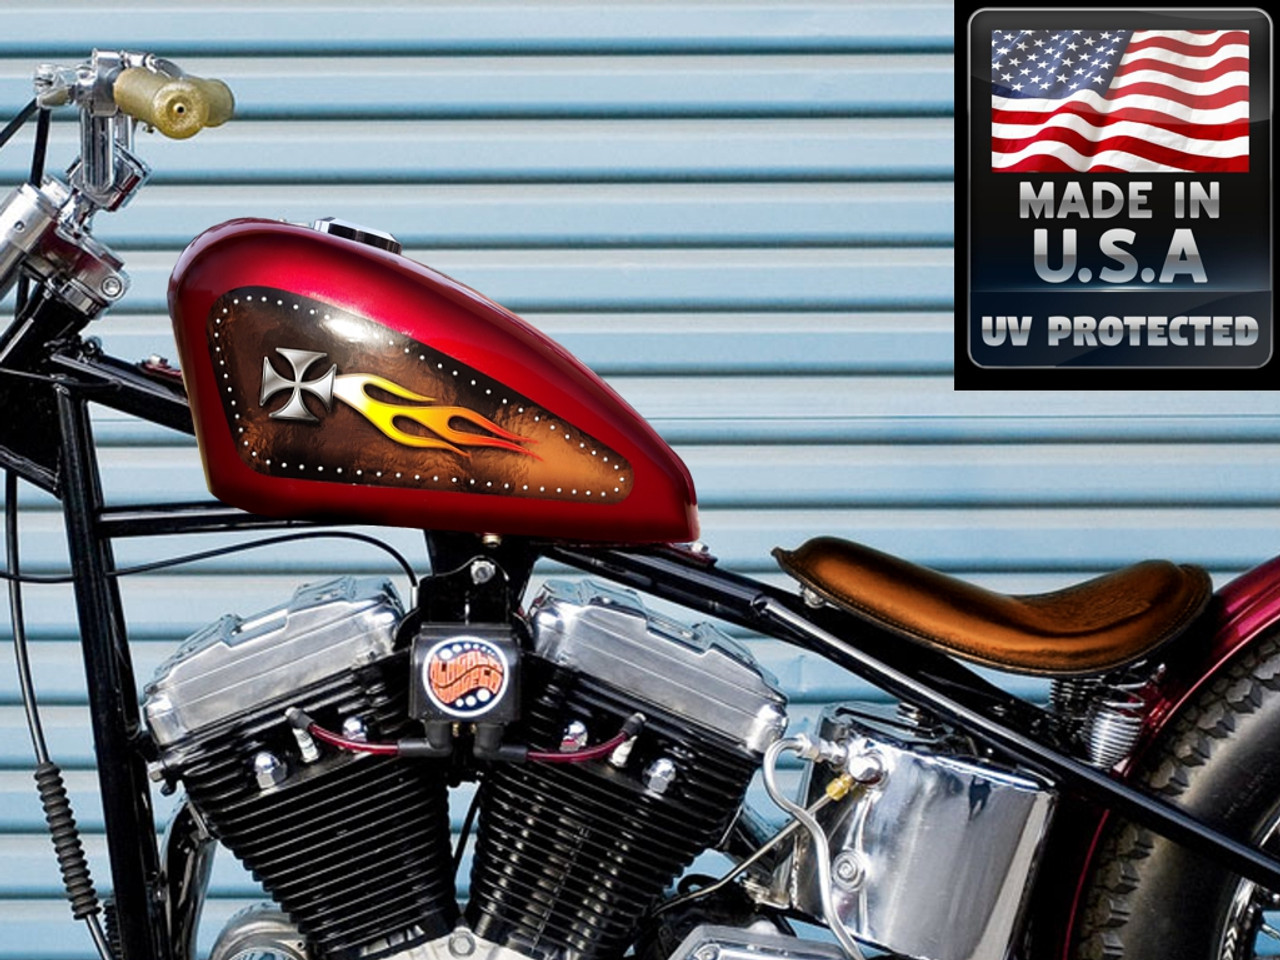 Riveted Iron Cross On Brown Leather W White Hot Fire Flame 2pc Tank Decal Set